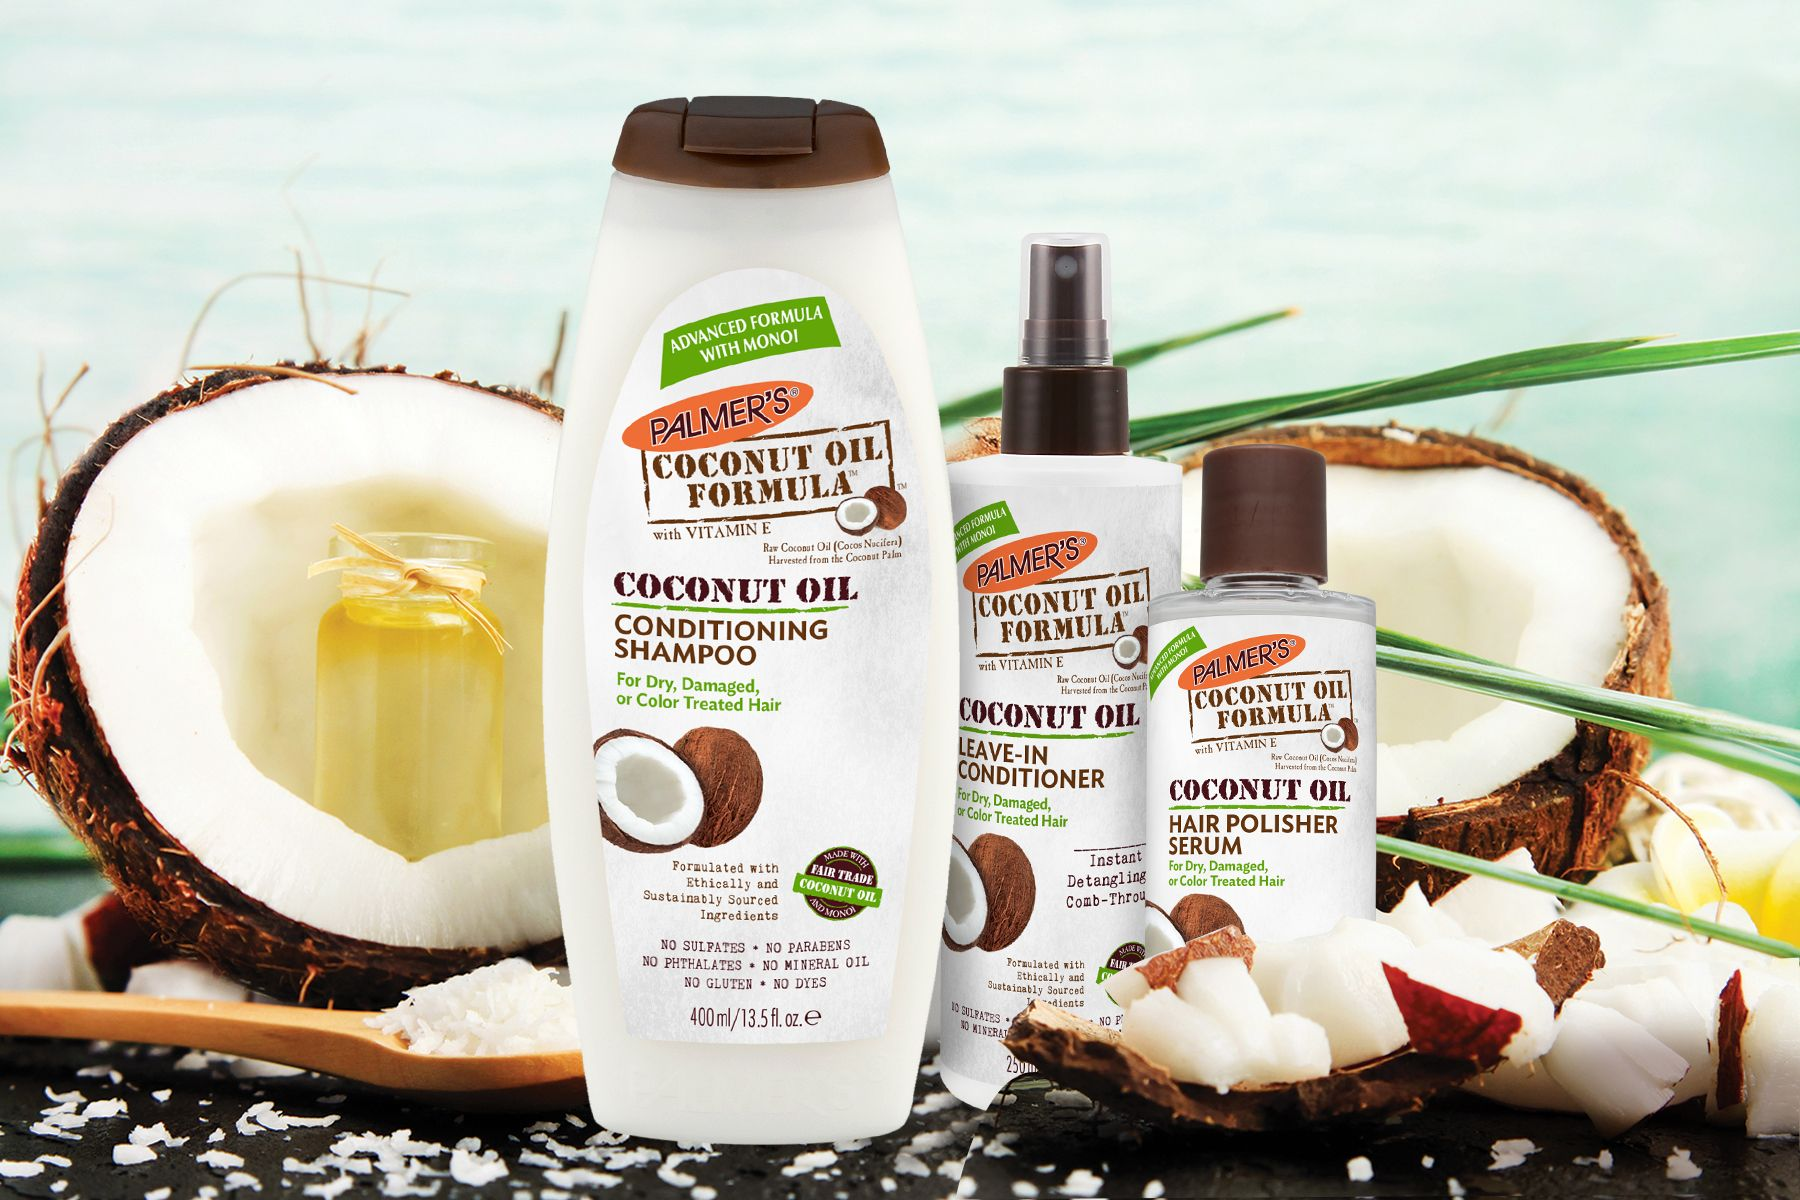 Add shine hydration to your hair with palmers coconut